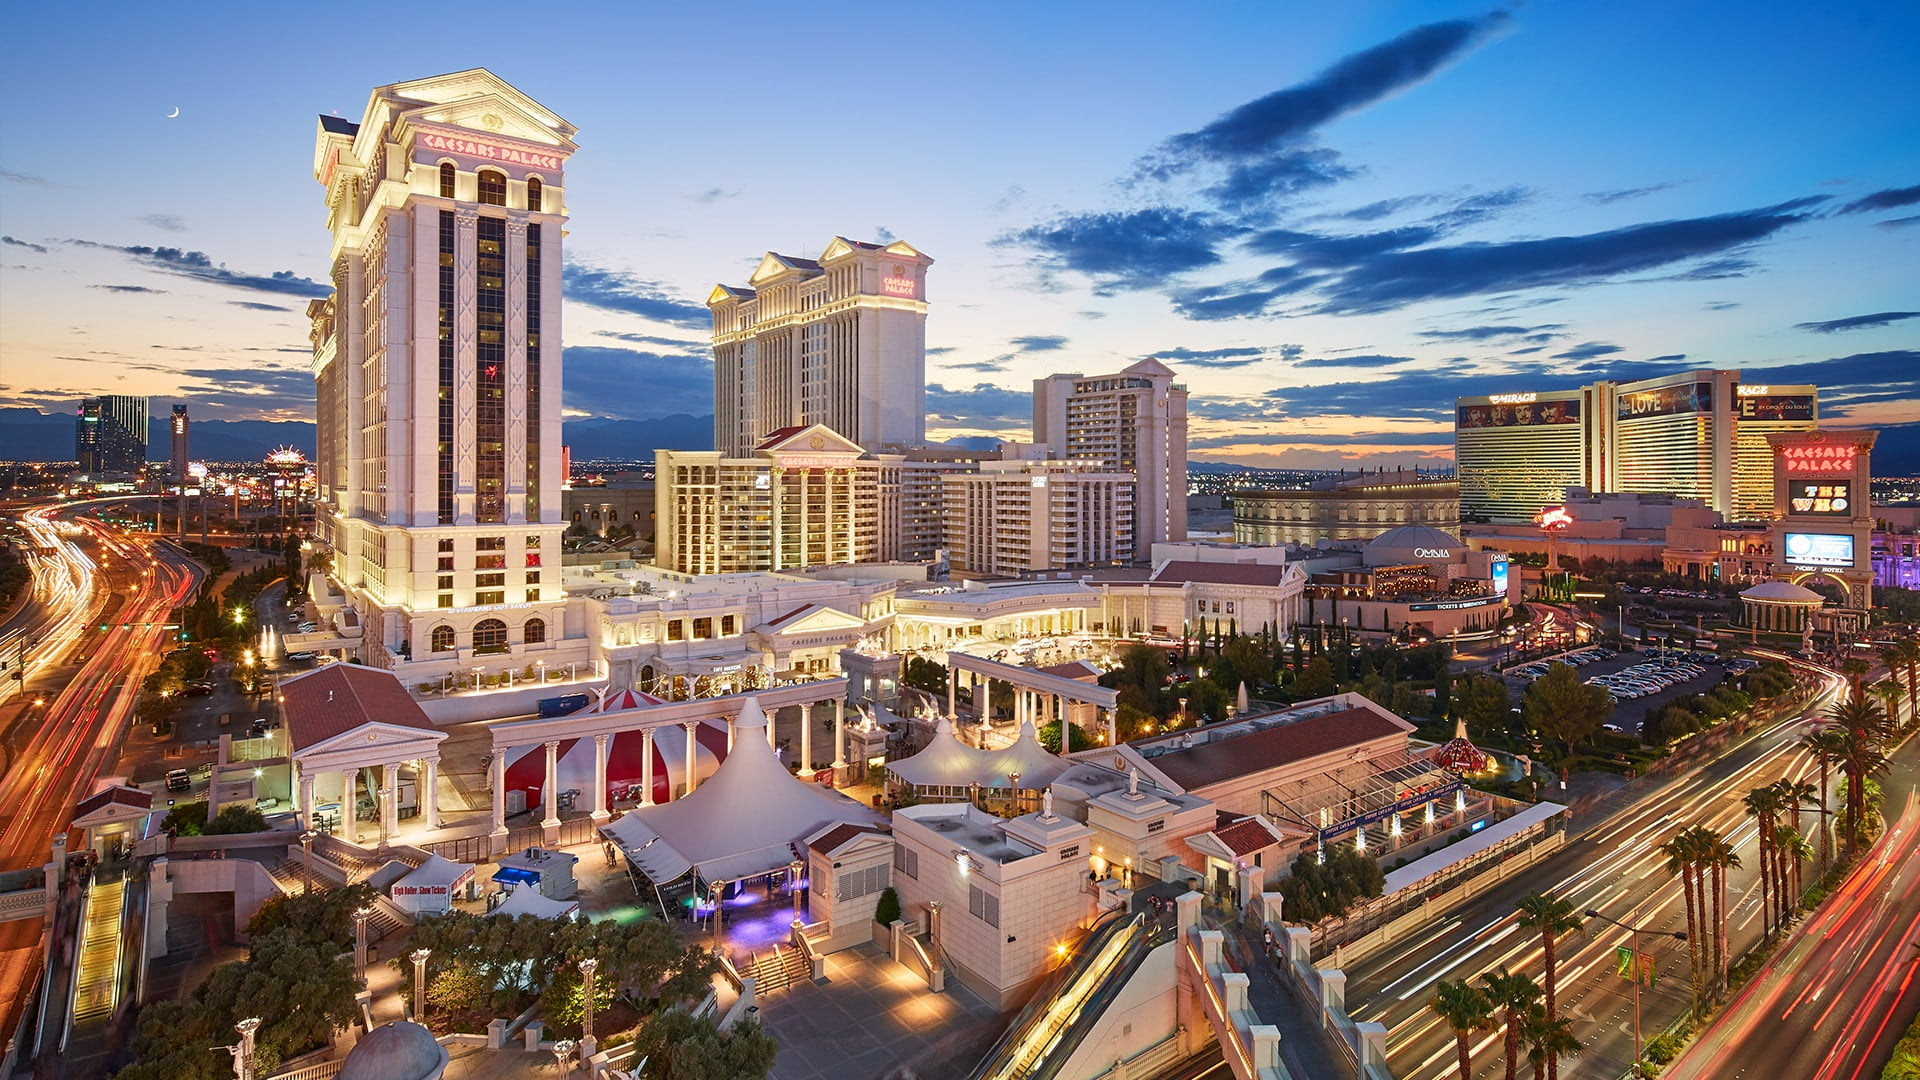 Vici Properties Grants $400m Secured By Caesars Forum Convention Center